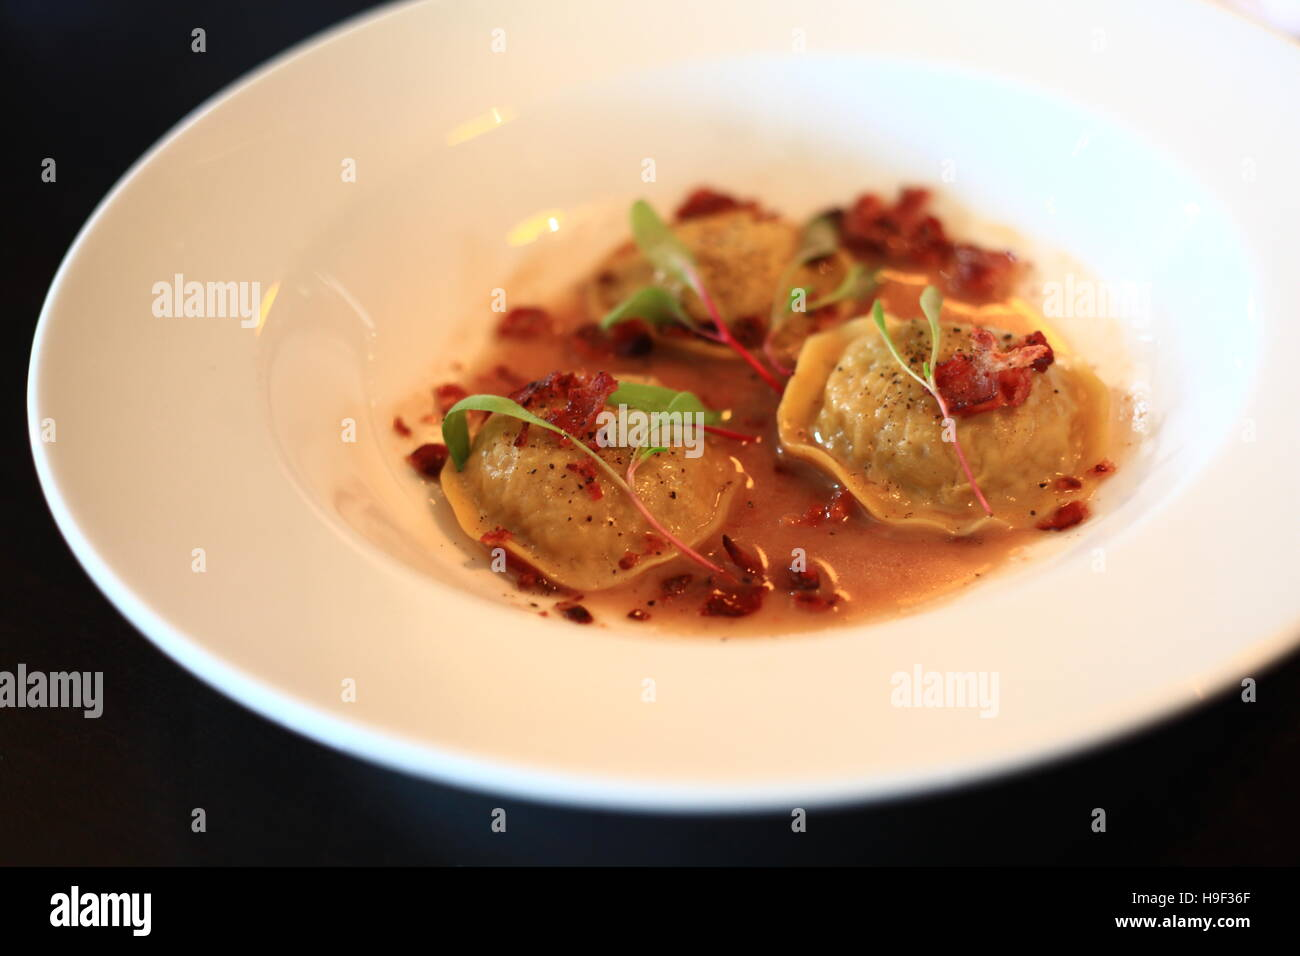 Cabbage ravioli with crispy bacon and pepper sauce - Stock Image